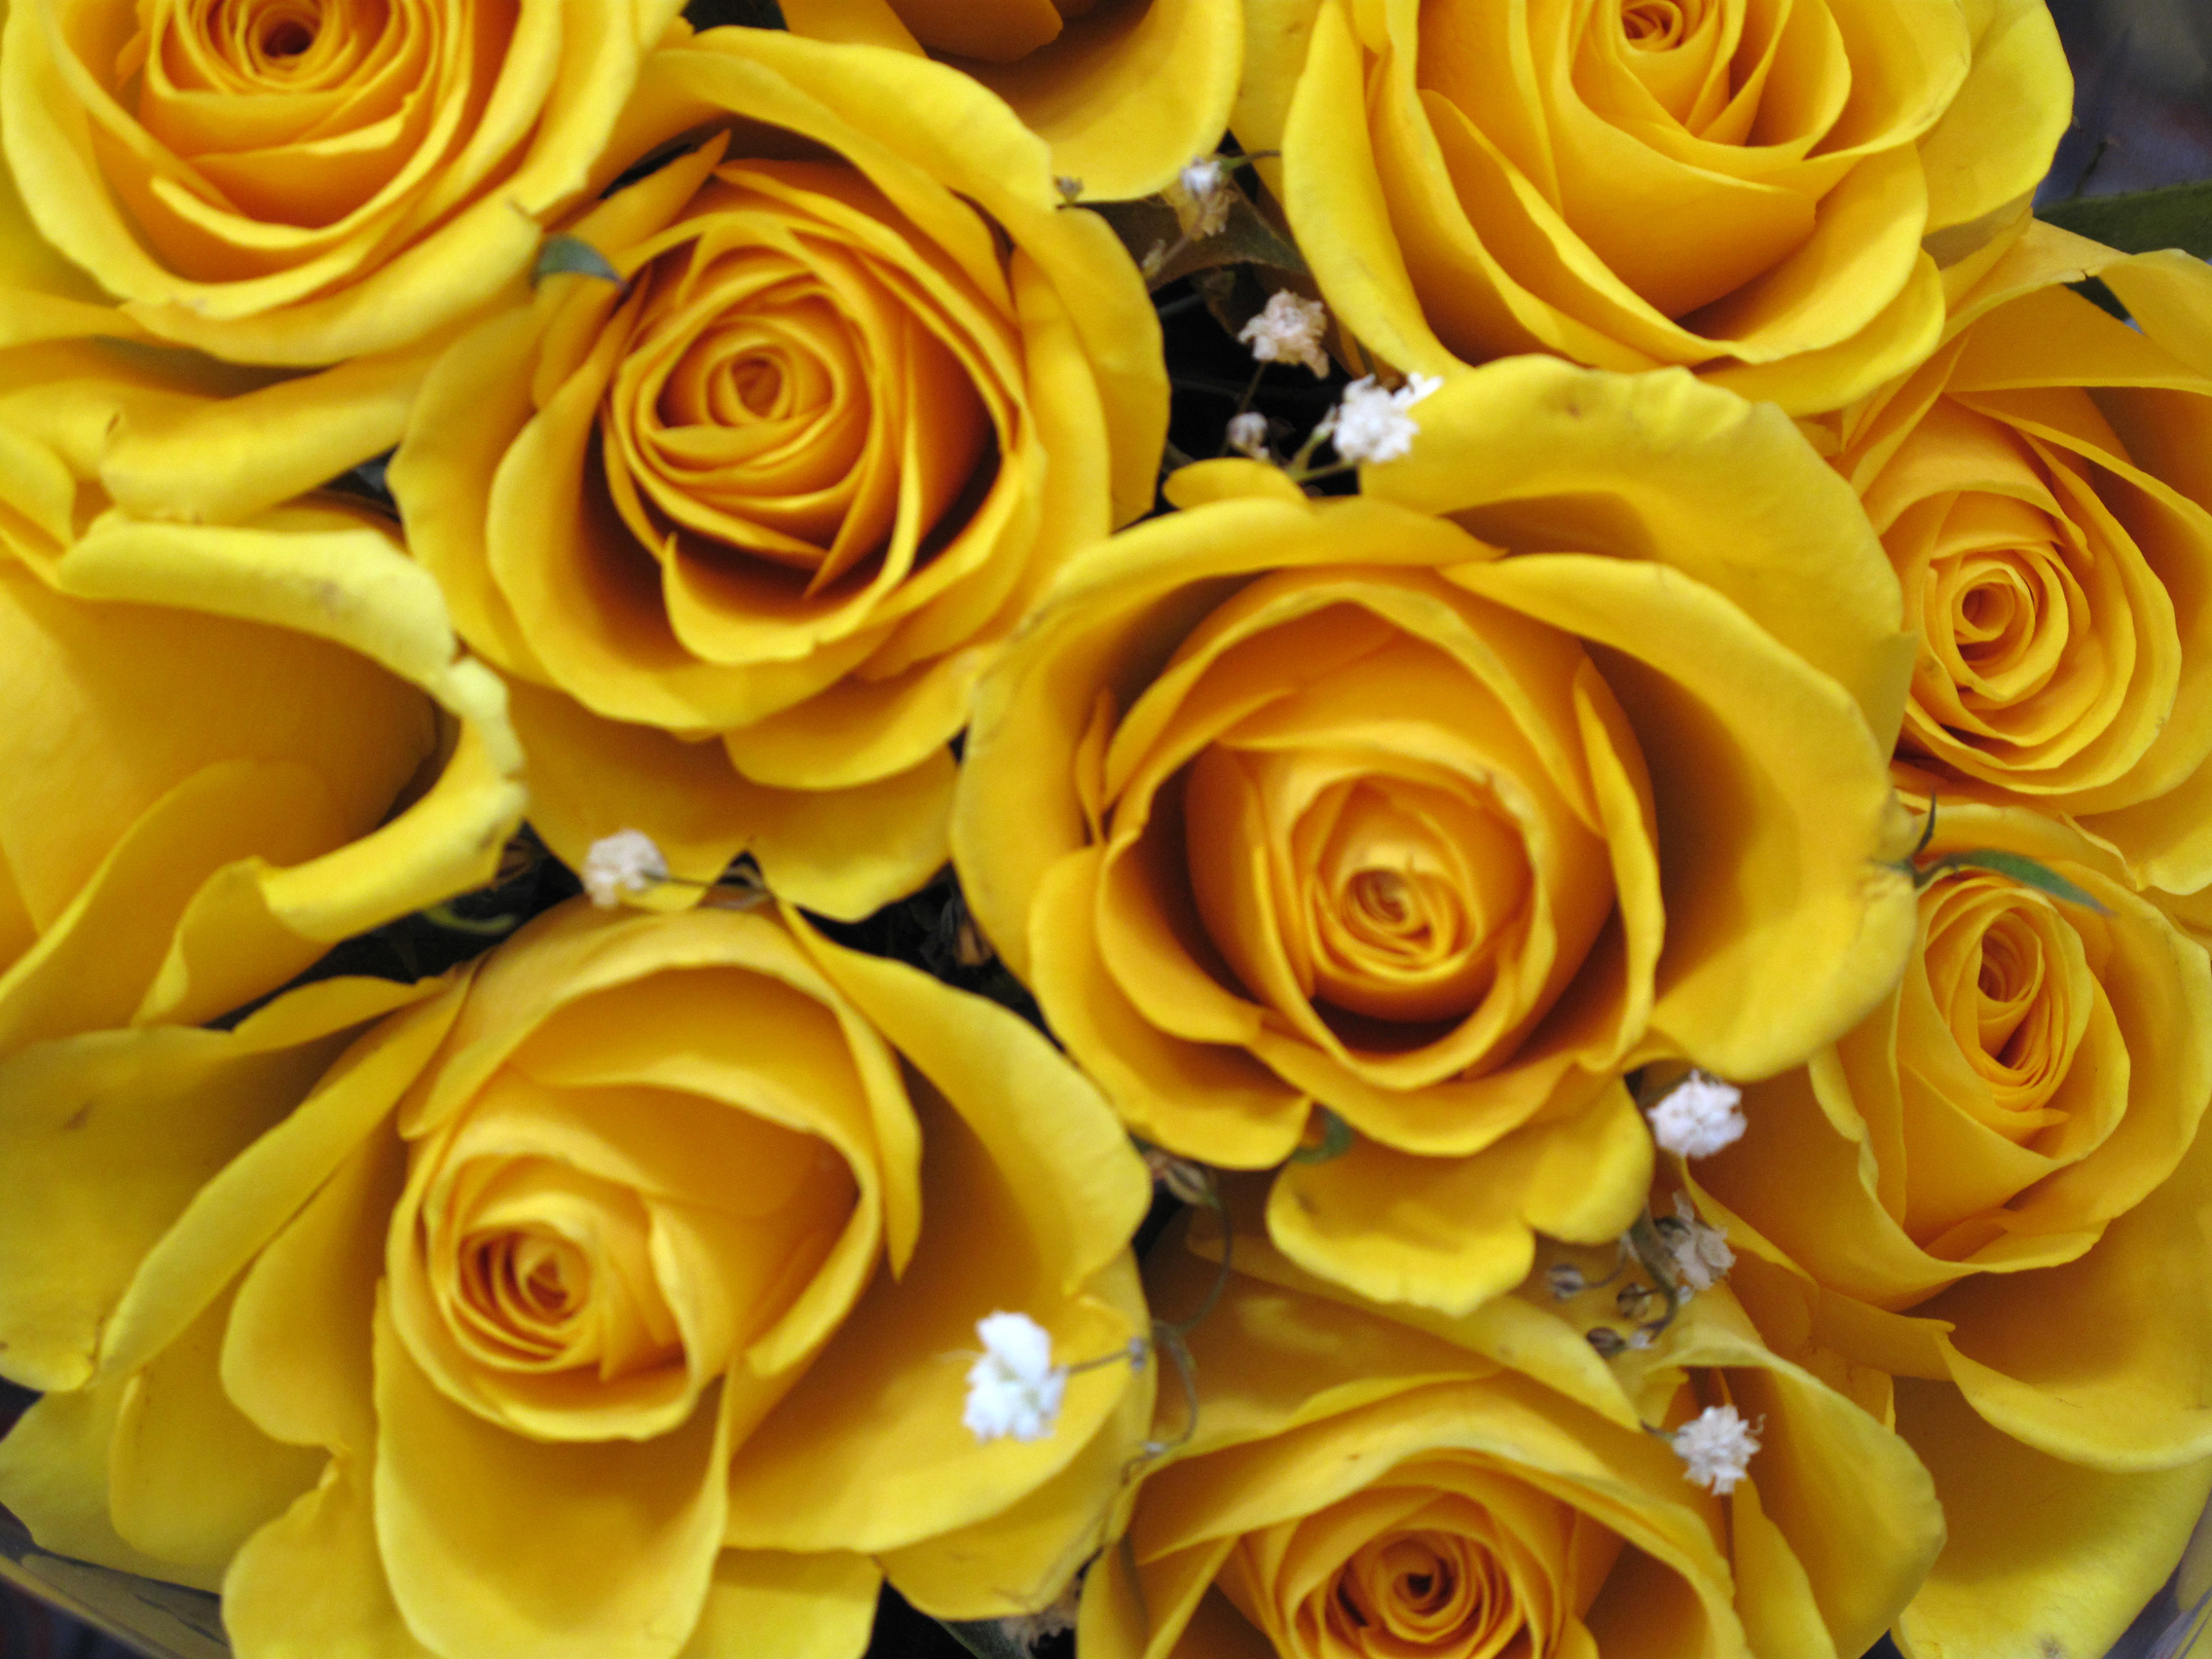 Yellow Rose Flowers Images Free Flowers Healthy